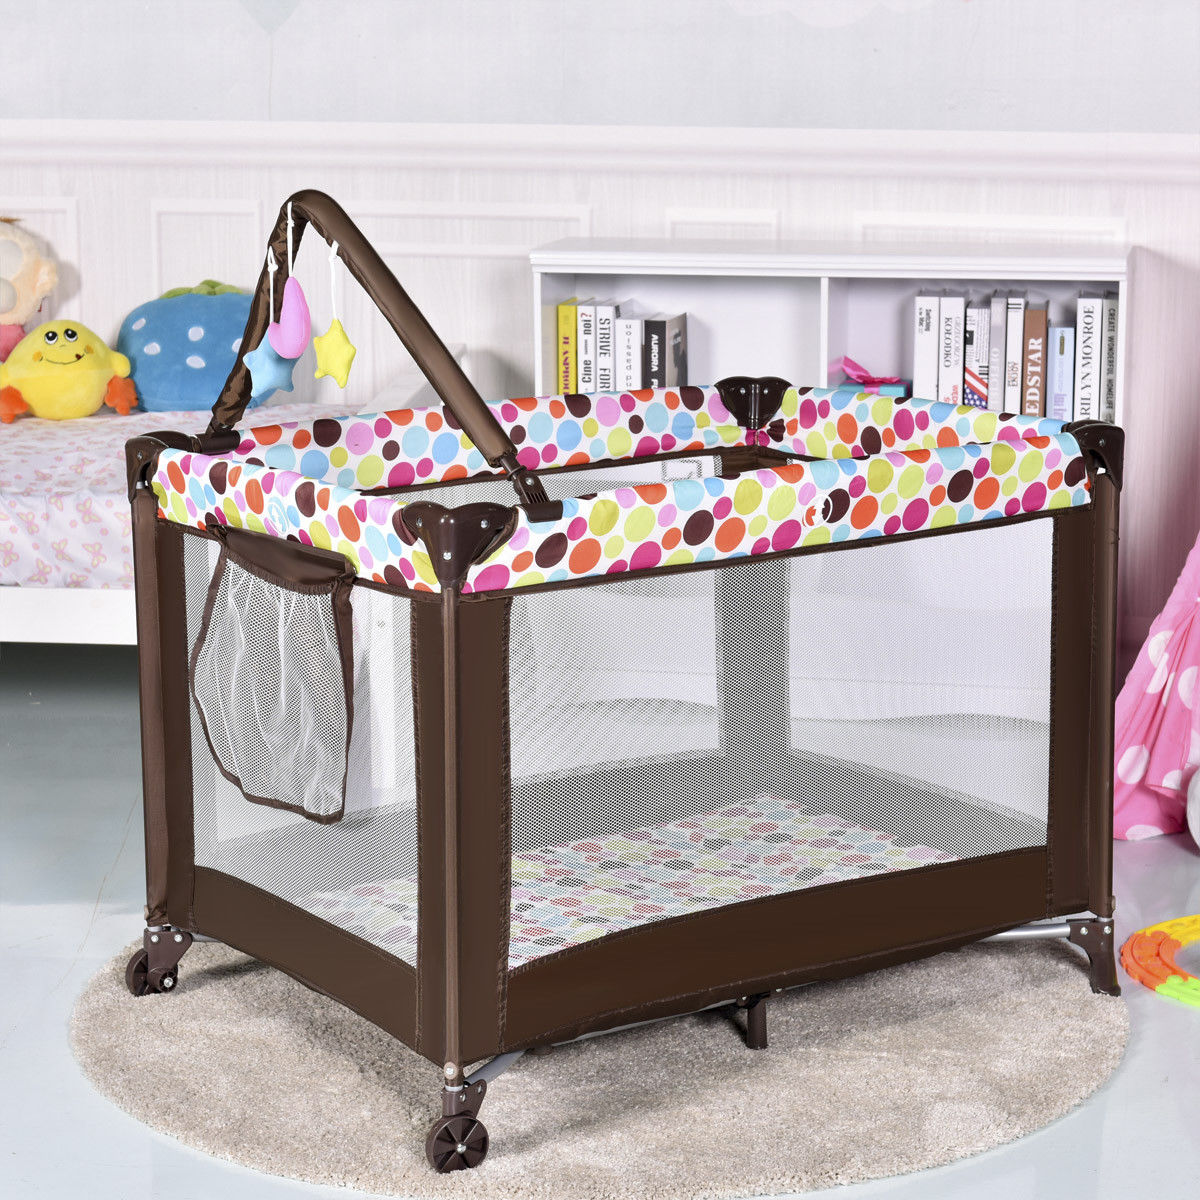 """GHP 40""""x28""""x28"""" Portable Open-View Folding Baby Crib Playpen Travel Bassinet Play Pen by Globe House Products"""